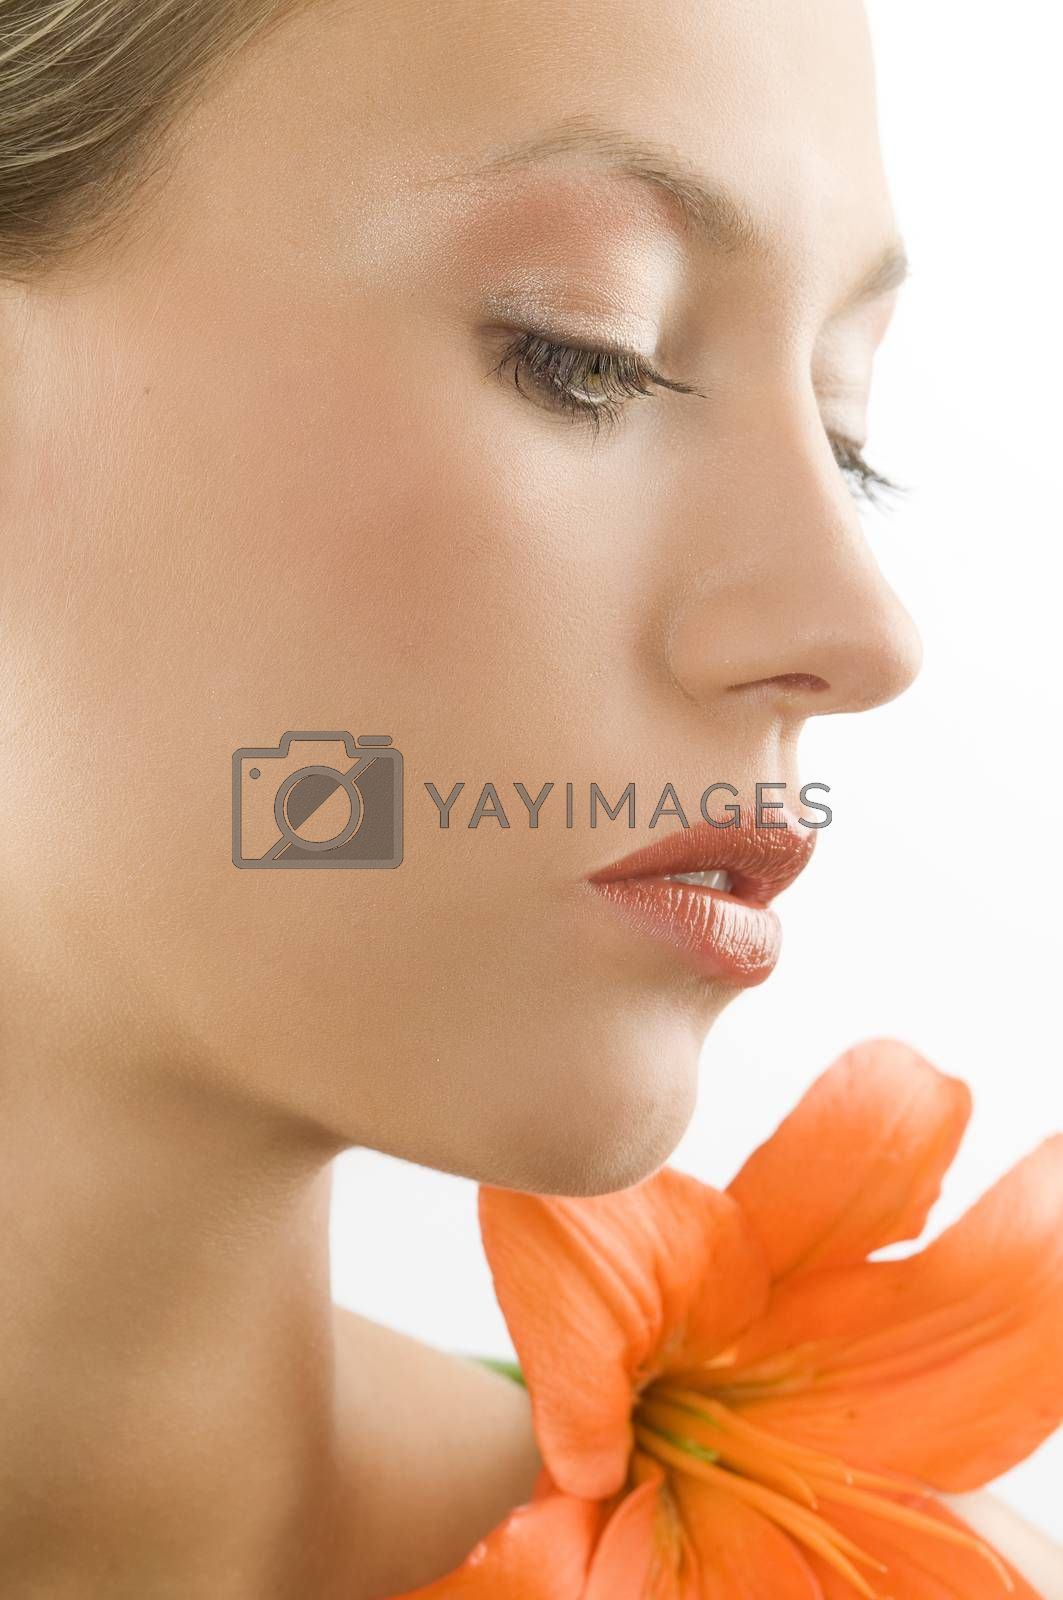 Royalty free image of close up in orange by fotoCD